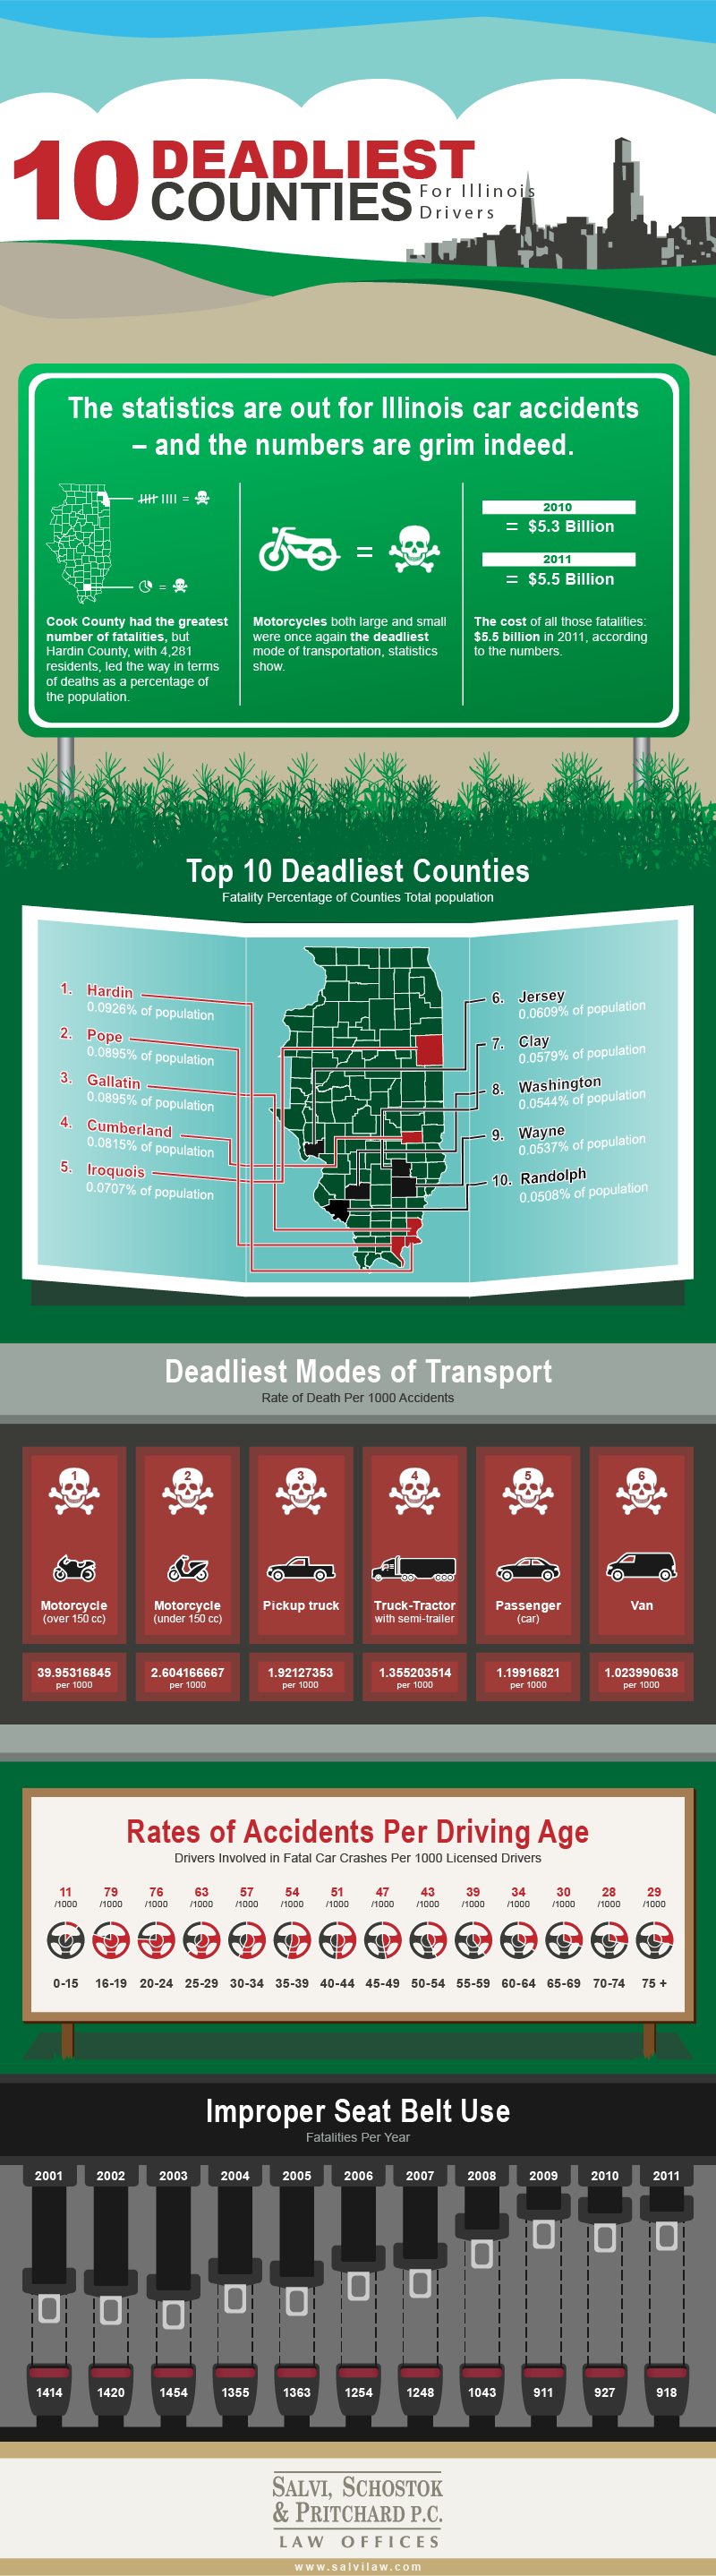 10-Deadliest-Counties-for-Illinois-Drivers-Infographic